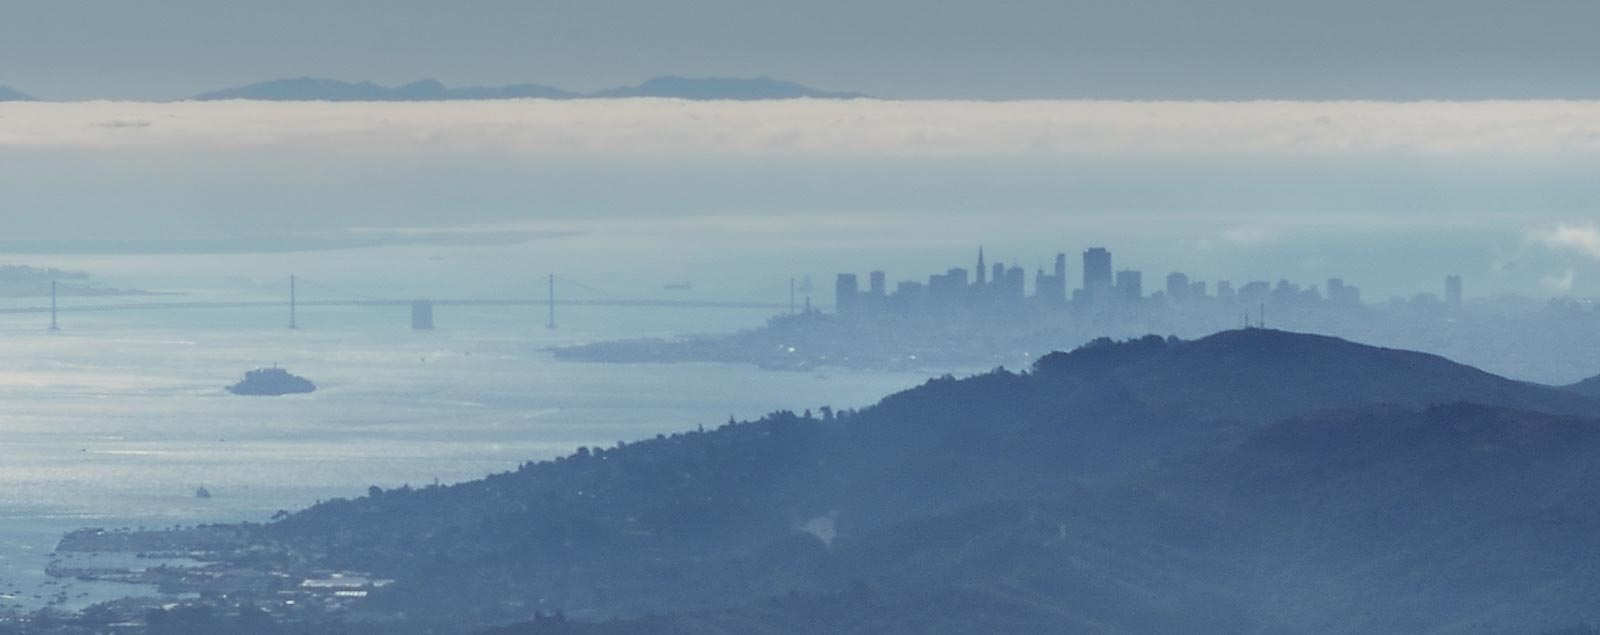 Scenic view of the San Francisco Skyline